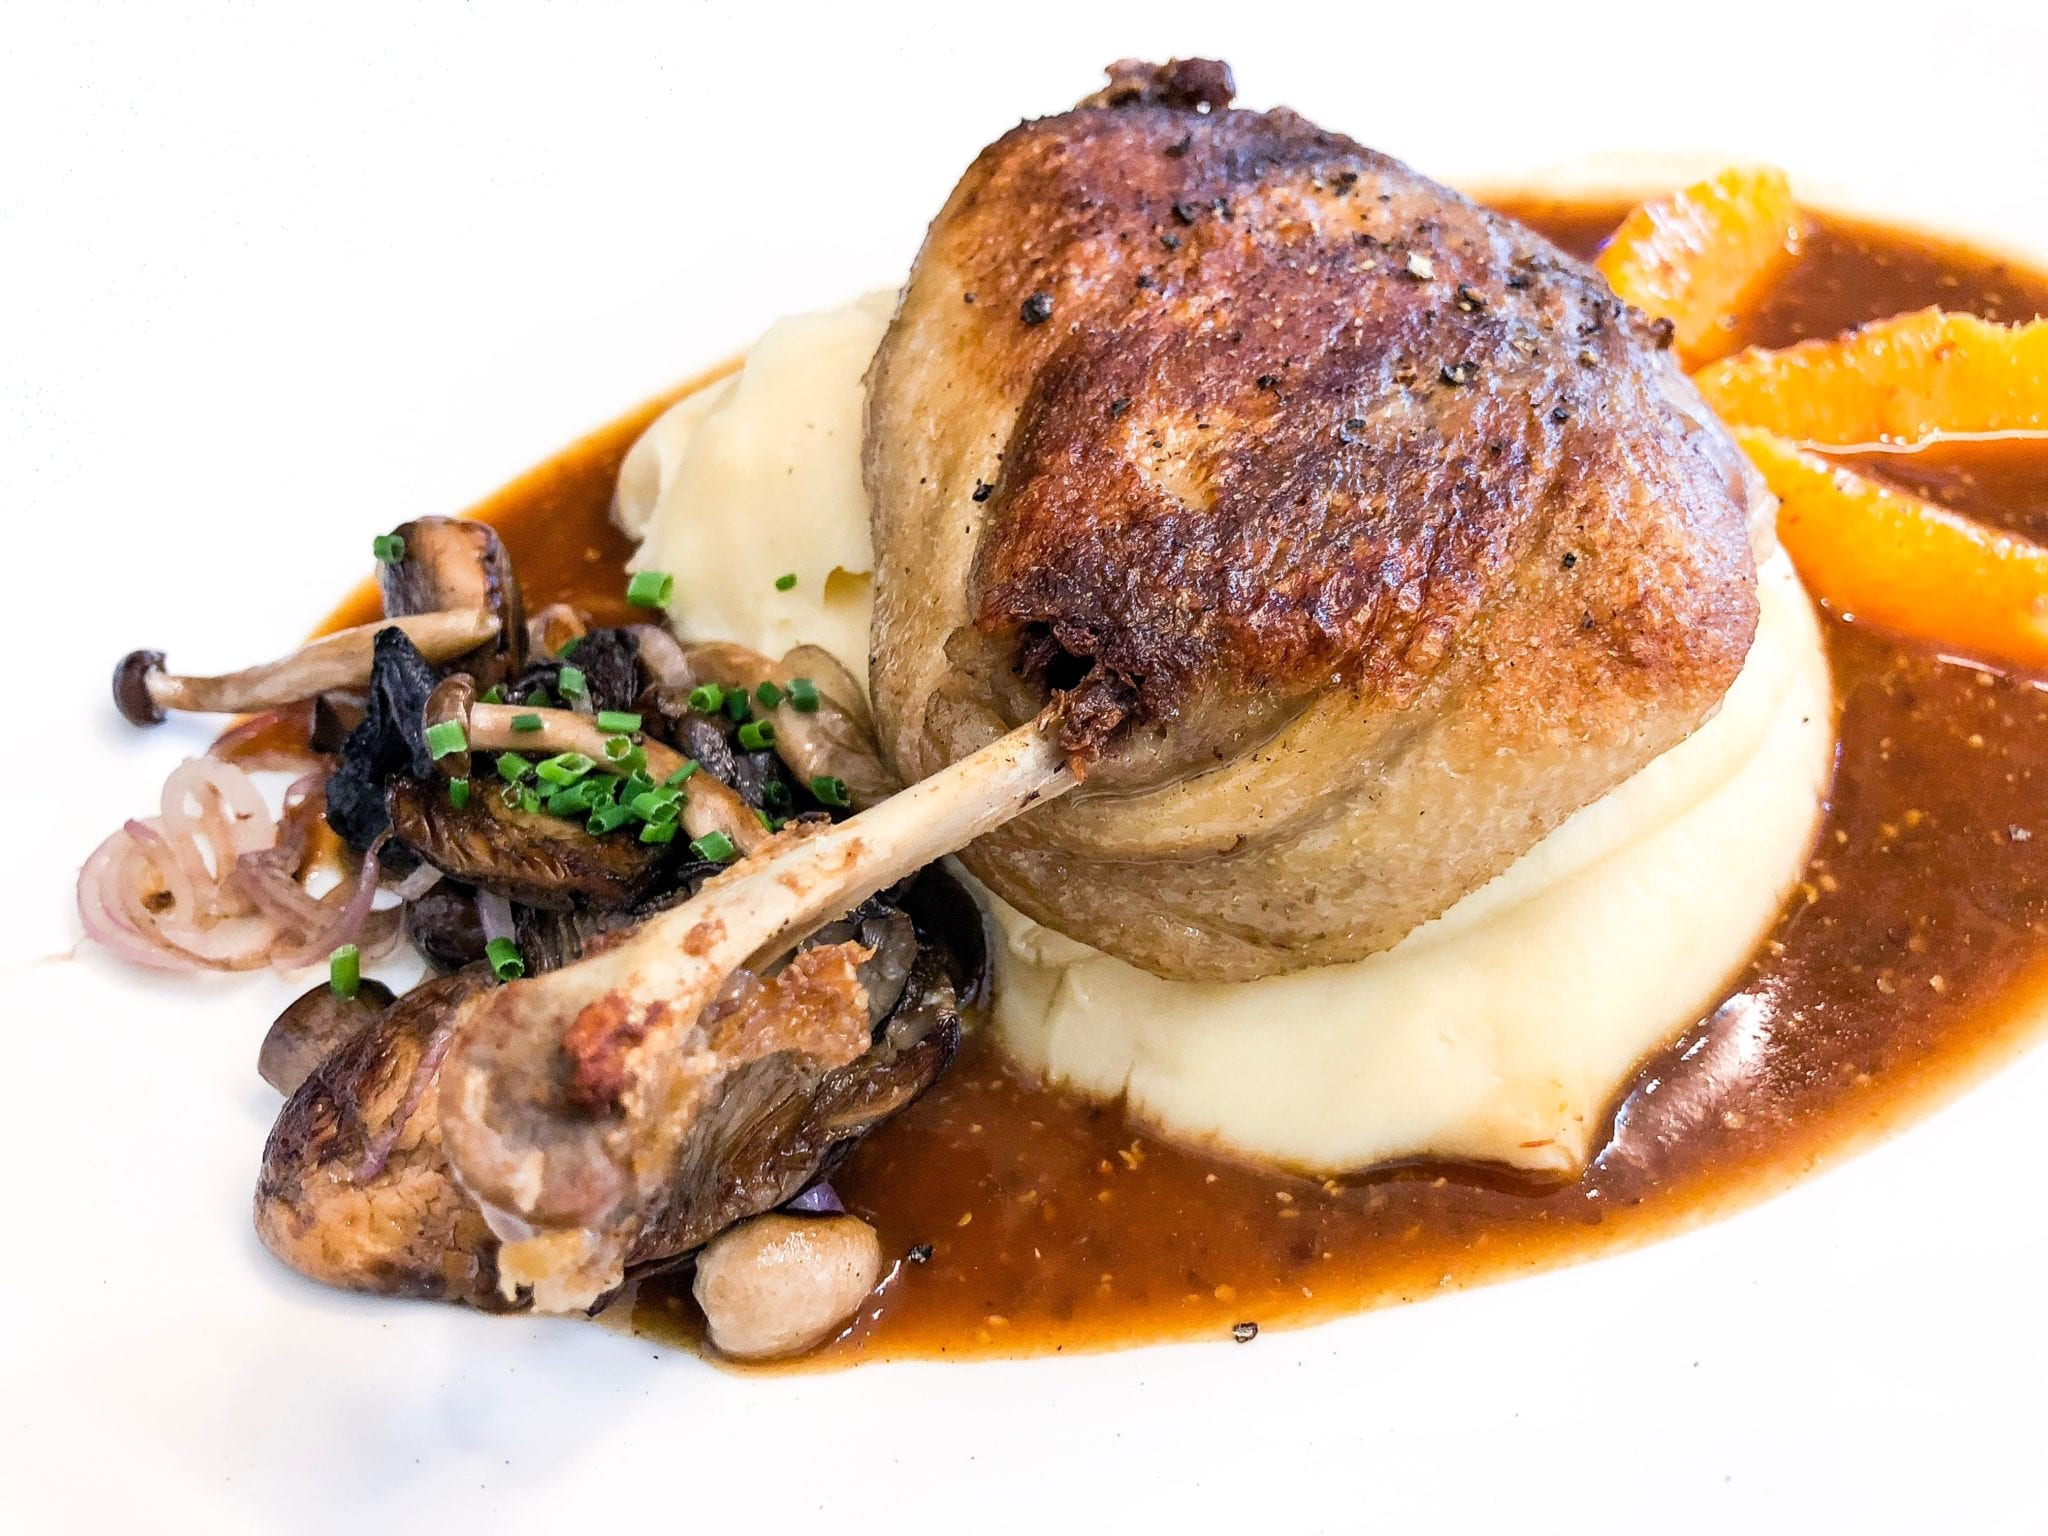 duck confit with sauce on mash potatoes